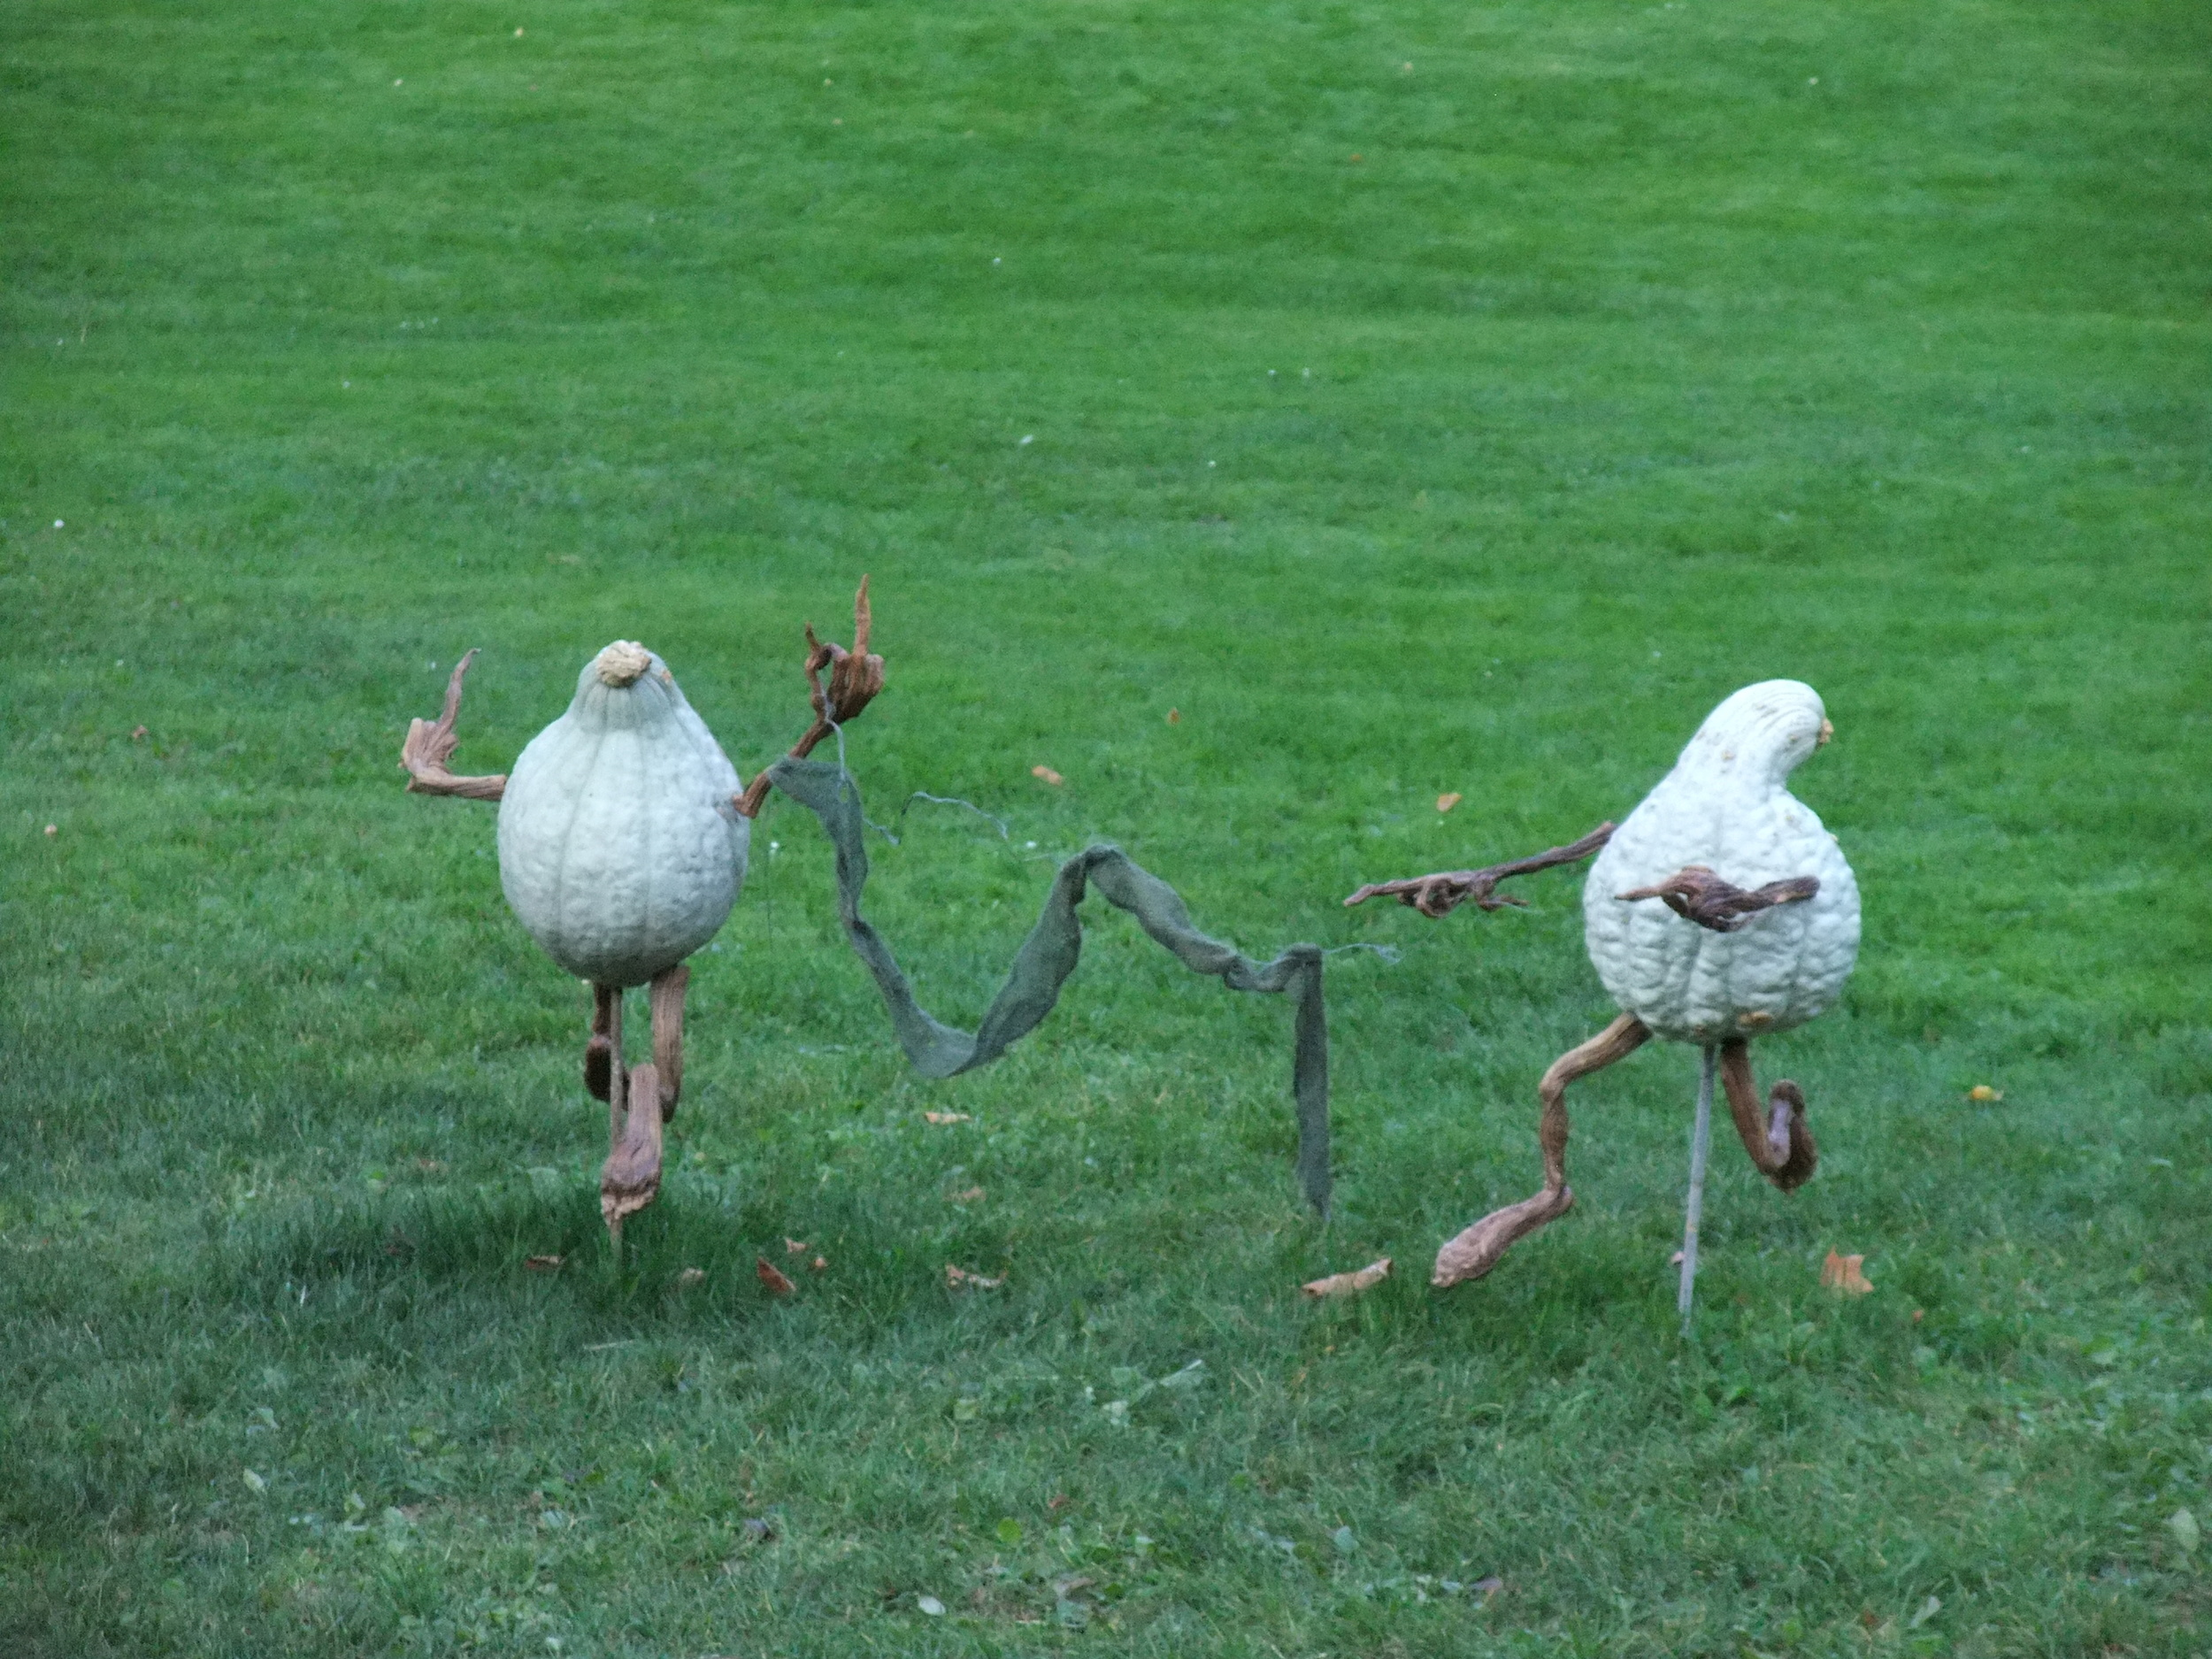 Gourds playing games